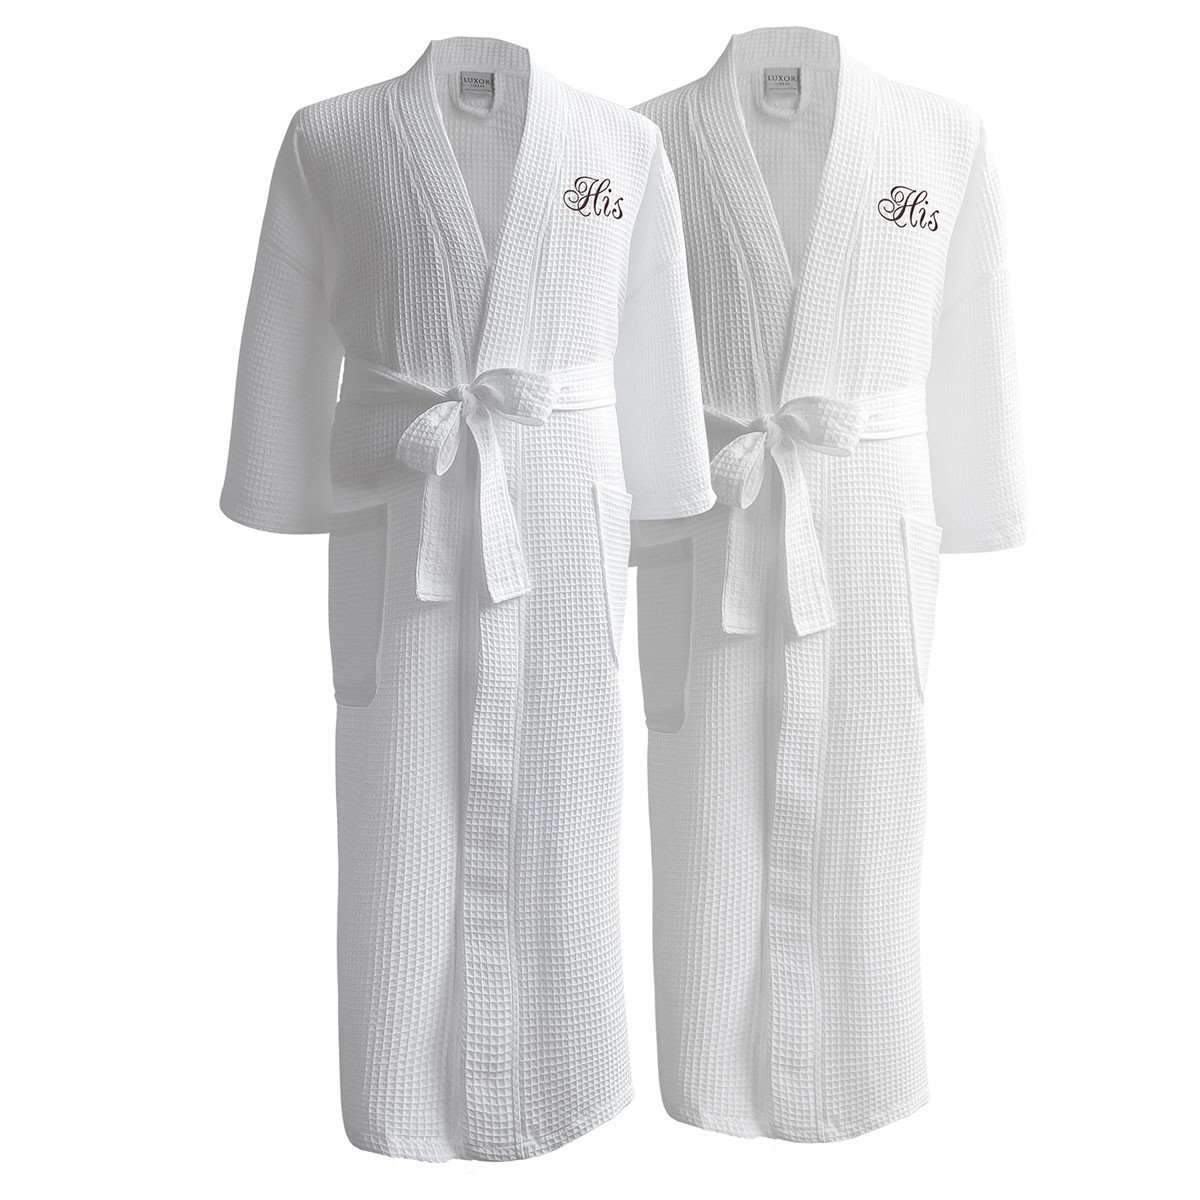 ac18b8fcff Egyptian Cotton Waffle Robes with Couple s Embroidery - Perfect Wedding  Gifts in Gift Packaging! - Walmart.com